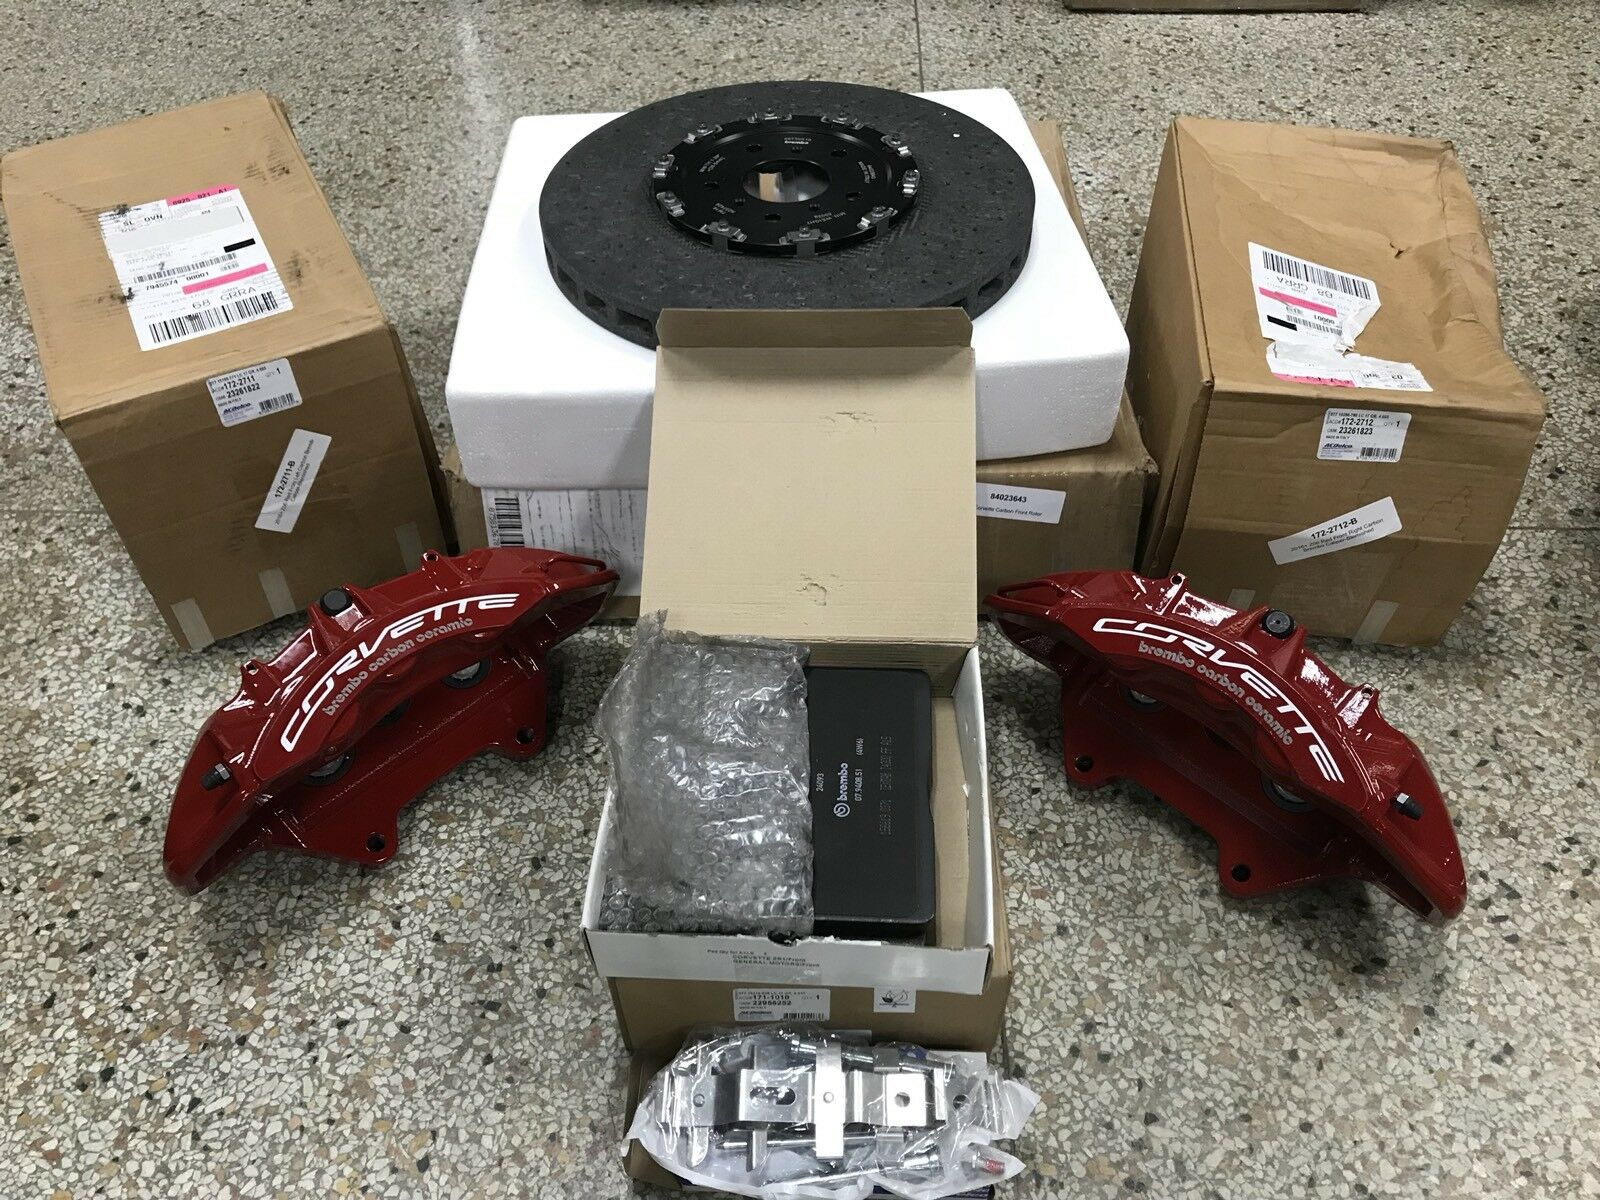 2016 Corvette Z06 Red Brembo Carbon Ceramic Gm Brake Calipers Wilwood Disc Kitfront Stock Replacementhonda262mm Rotors 1 Of 8only Available